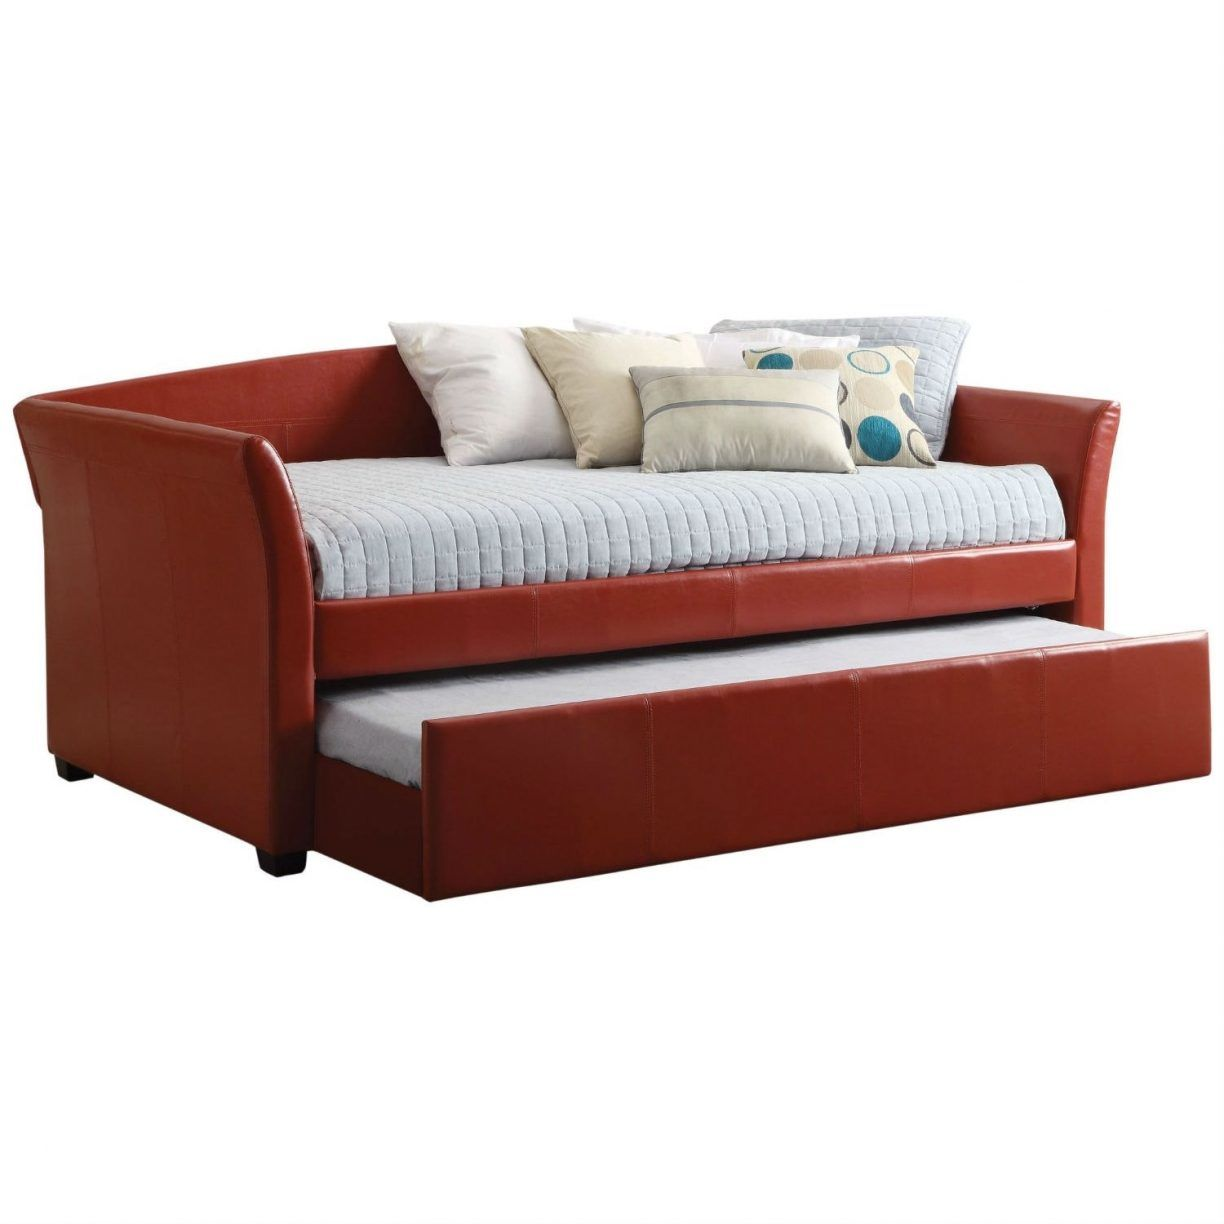 stunning sofa daybed with trundle image-Beautiful sofa Daybed with Trundle Inspiration